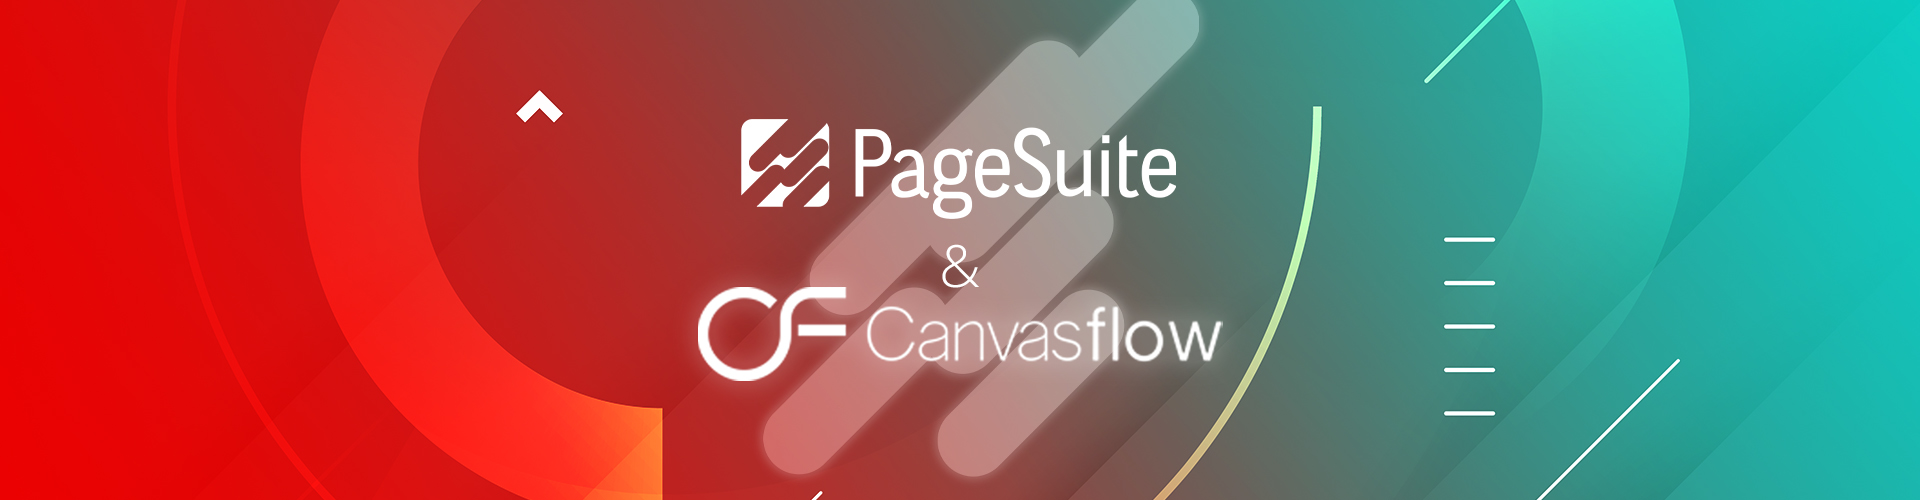 New Tech Partnership: Canvasflow & PageSuite